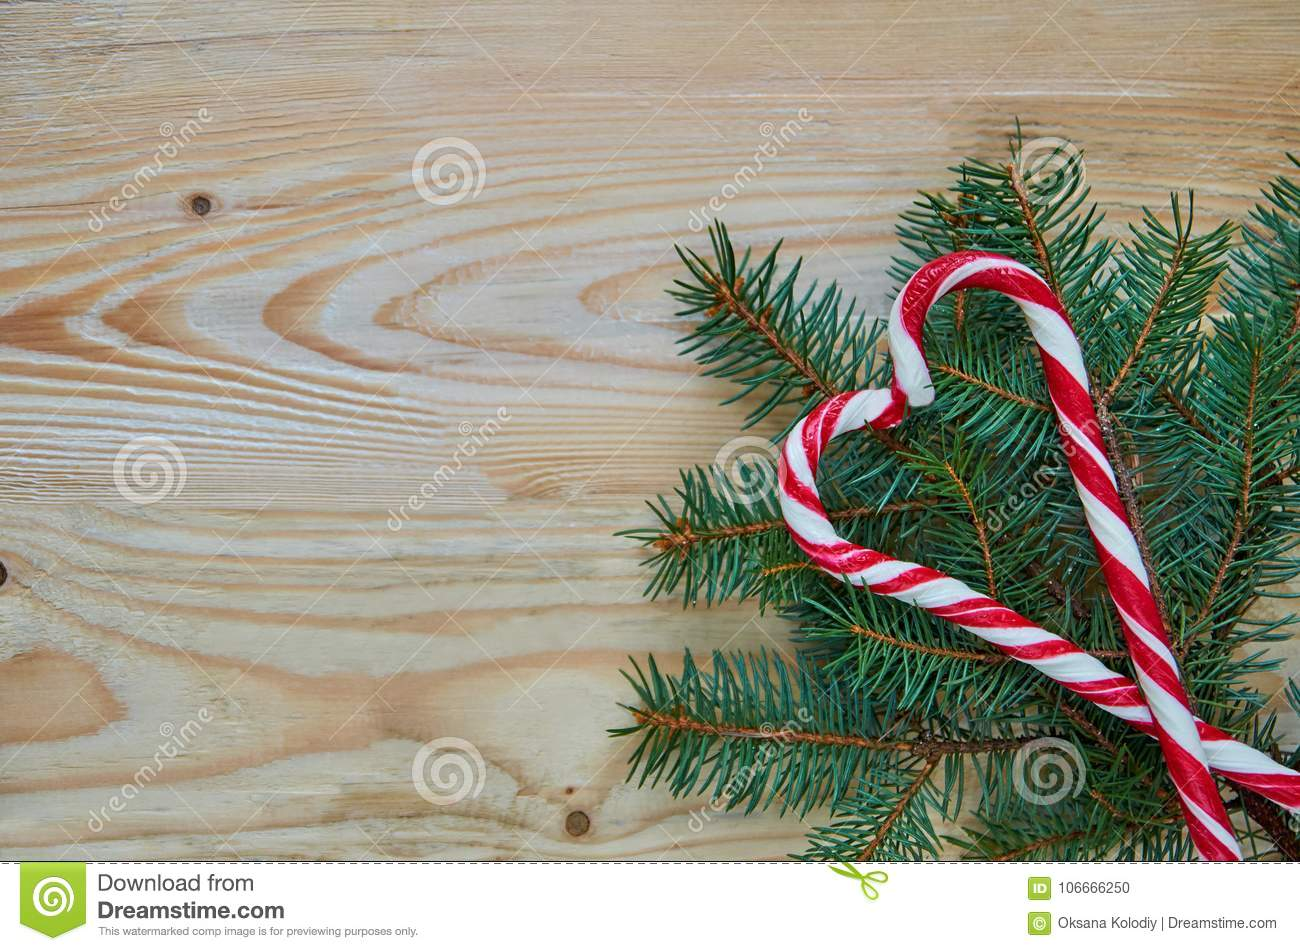 Heart Of Two Red Candy Cones On The Christmas Tree Branches With Free Copy Space On Left Side New Year Or Valentines Day Sweets Stock Photo Image Of Holiday Decor 106666250